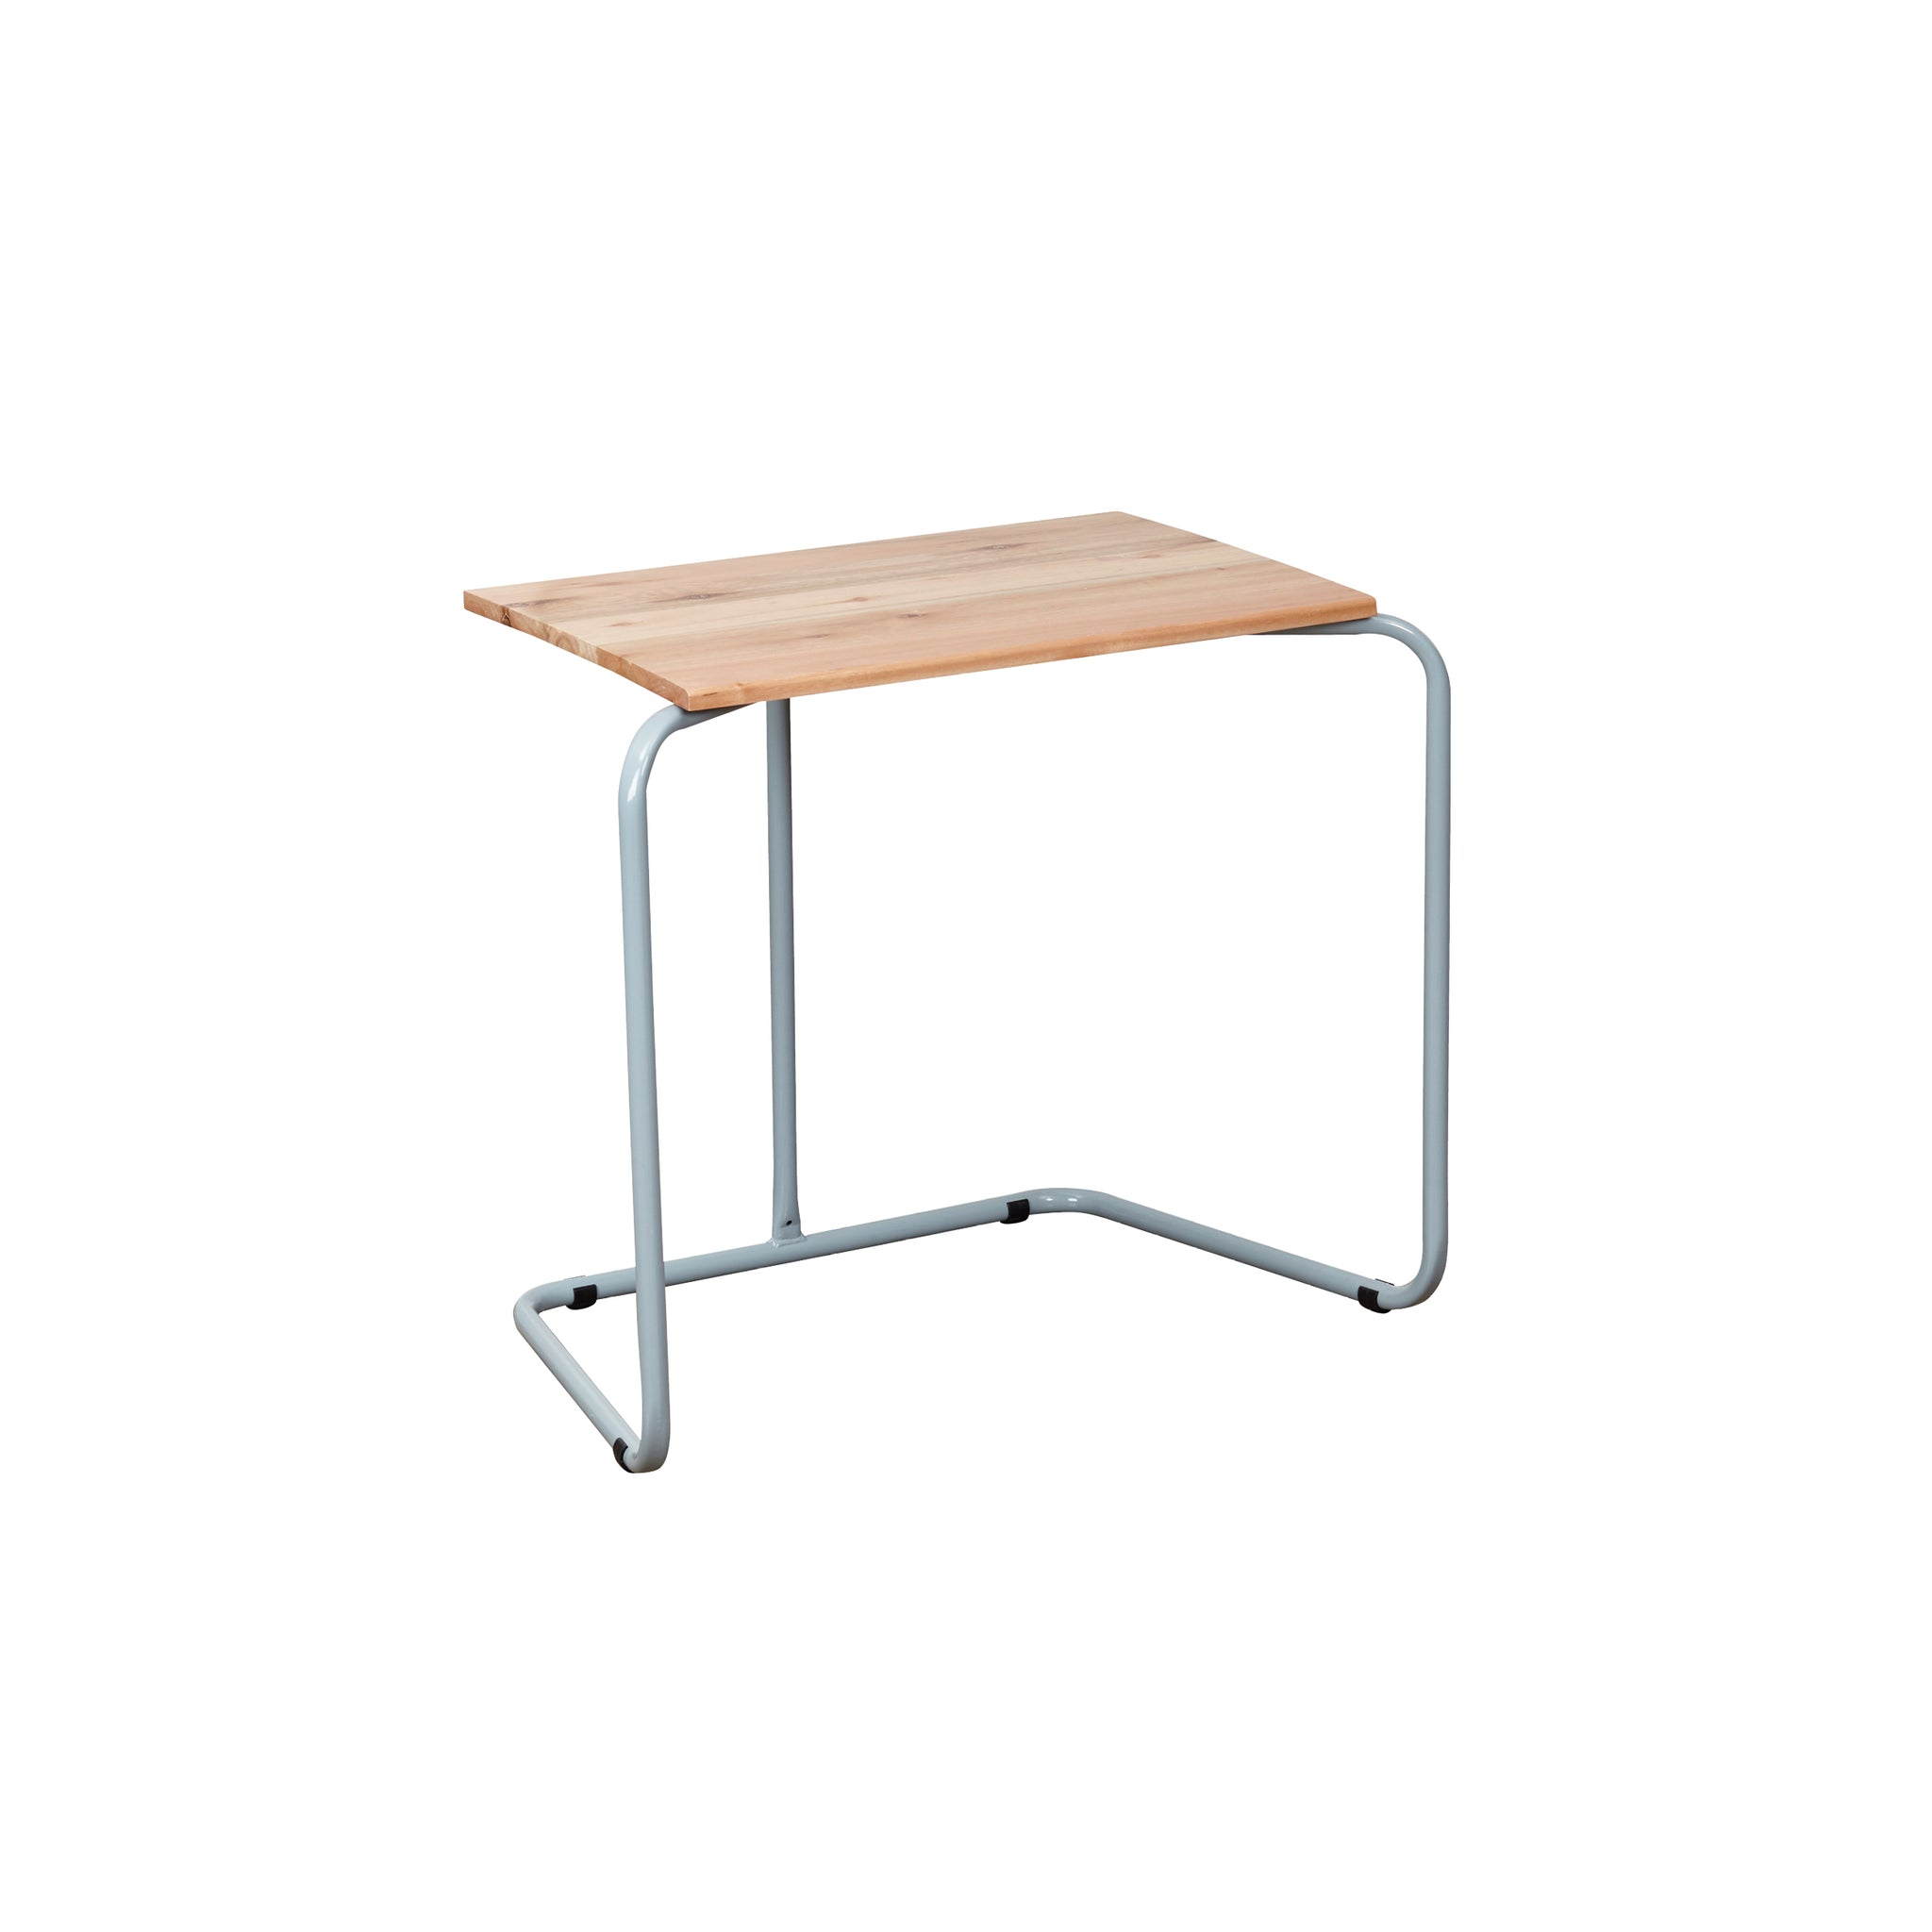 Hedcor 3 Legged desk saligna